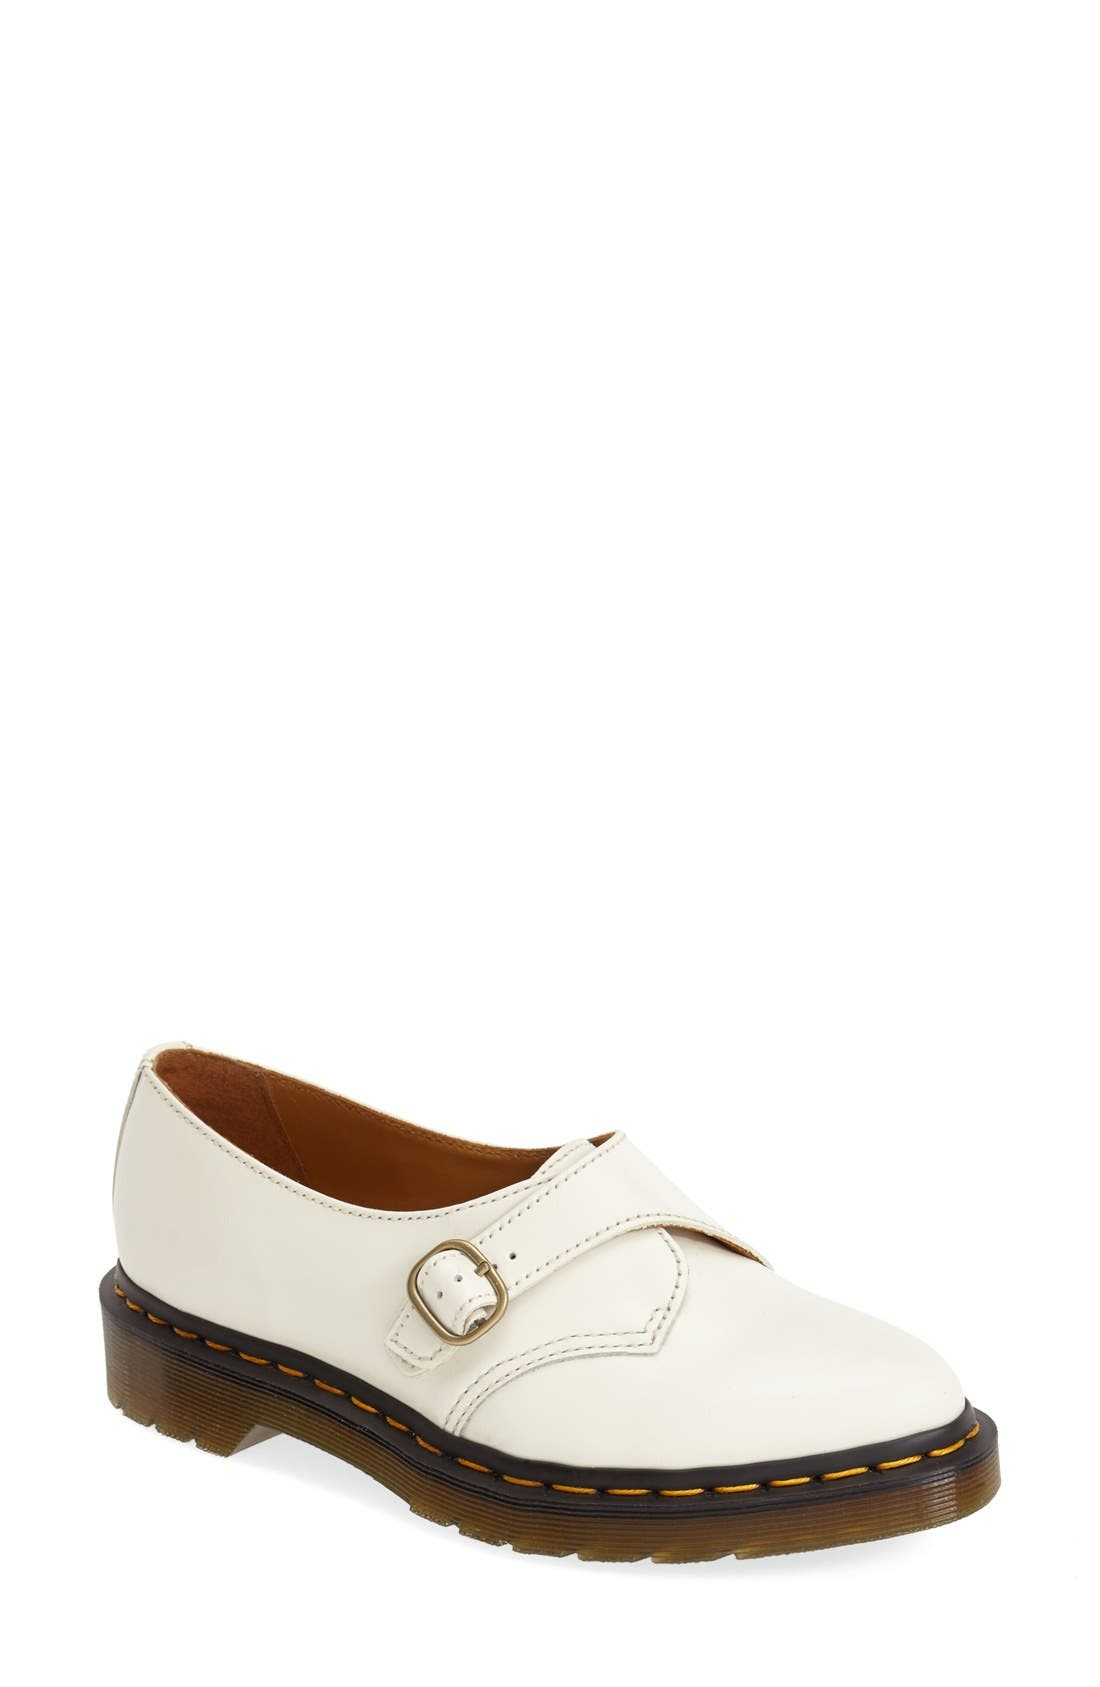 'Agnes' Monk Strap Flat,                             Main thumbnail 1, color,                             100